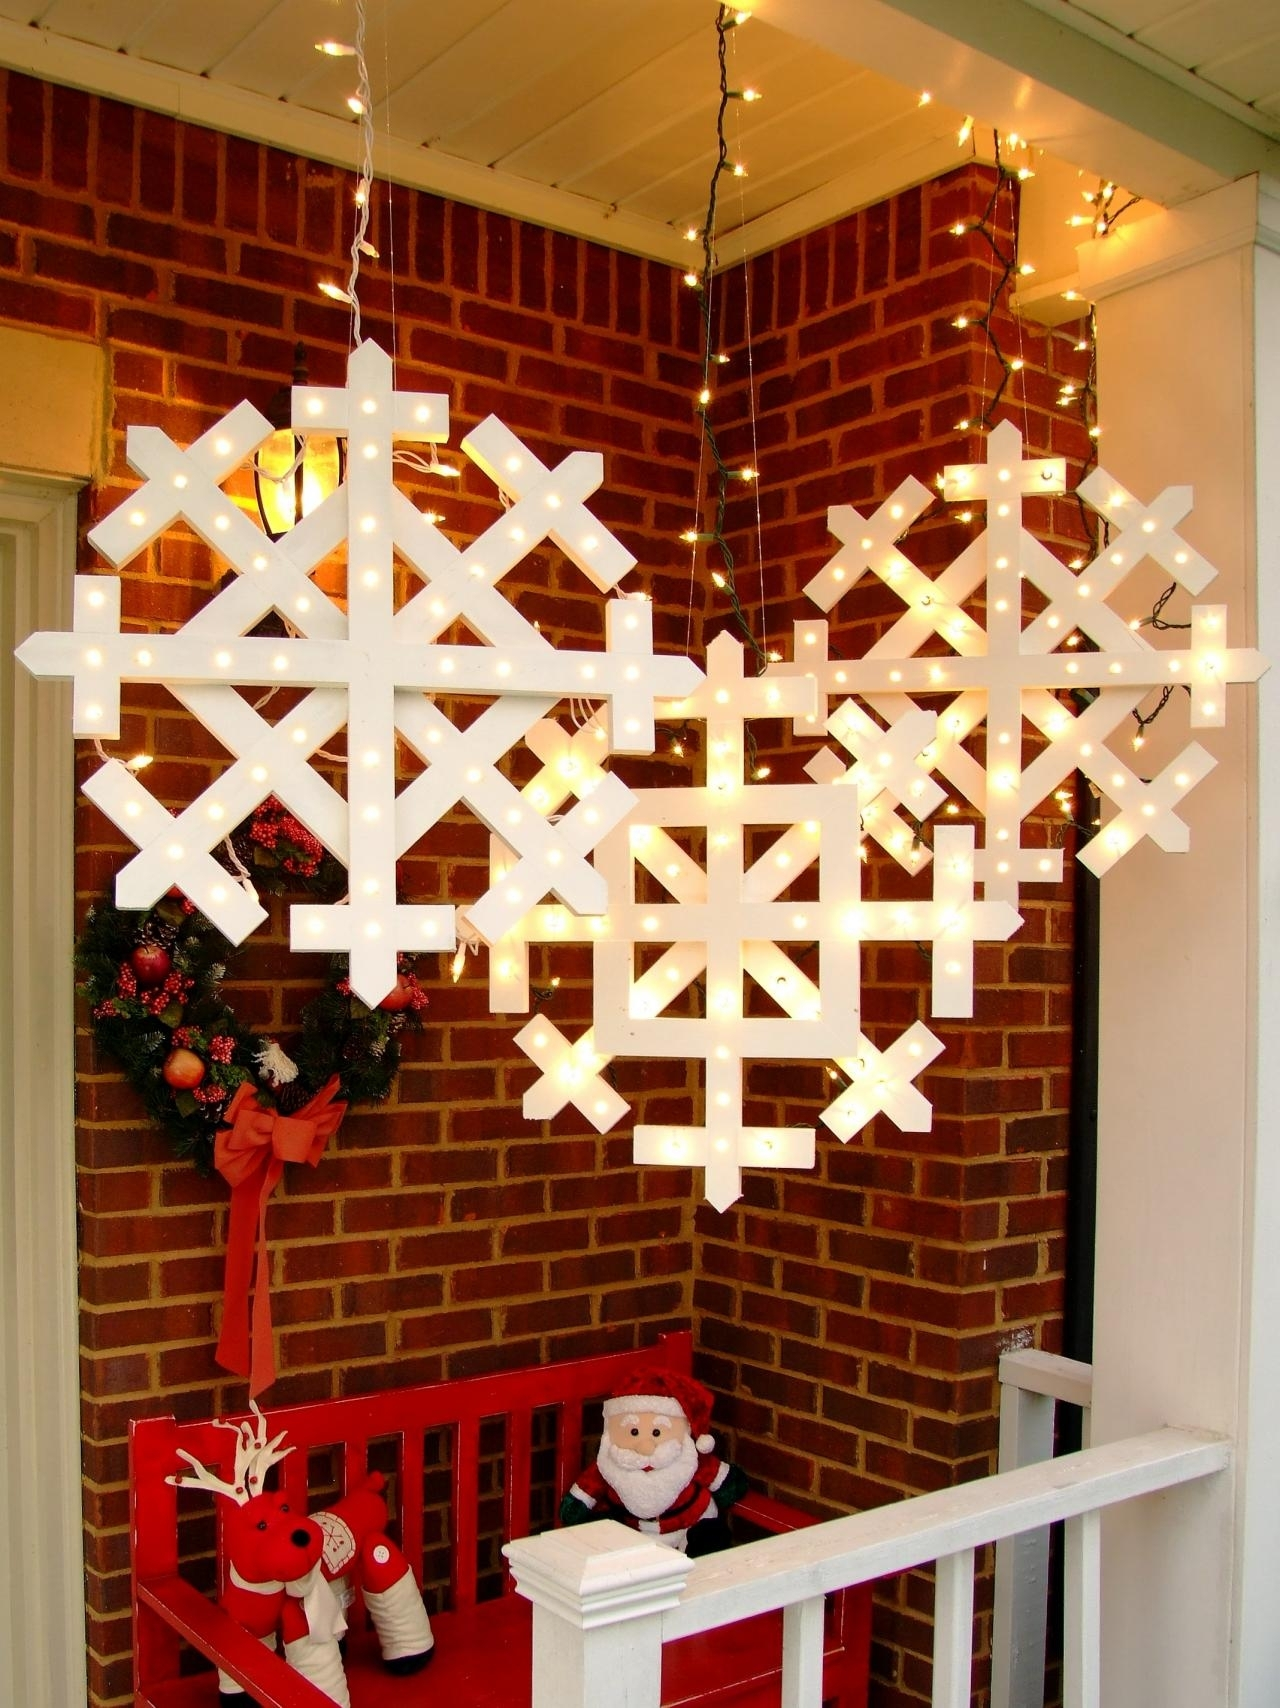 How To Make Wooden Snowflakes With Lights | How Tos | Diy Throughout Outdoor Hanging Snowflake Lights (View 11 of 15)